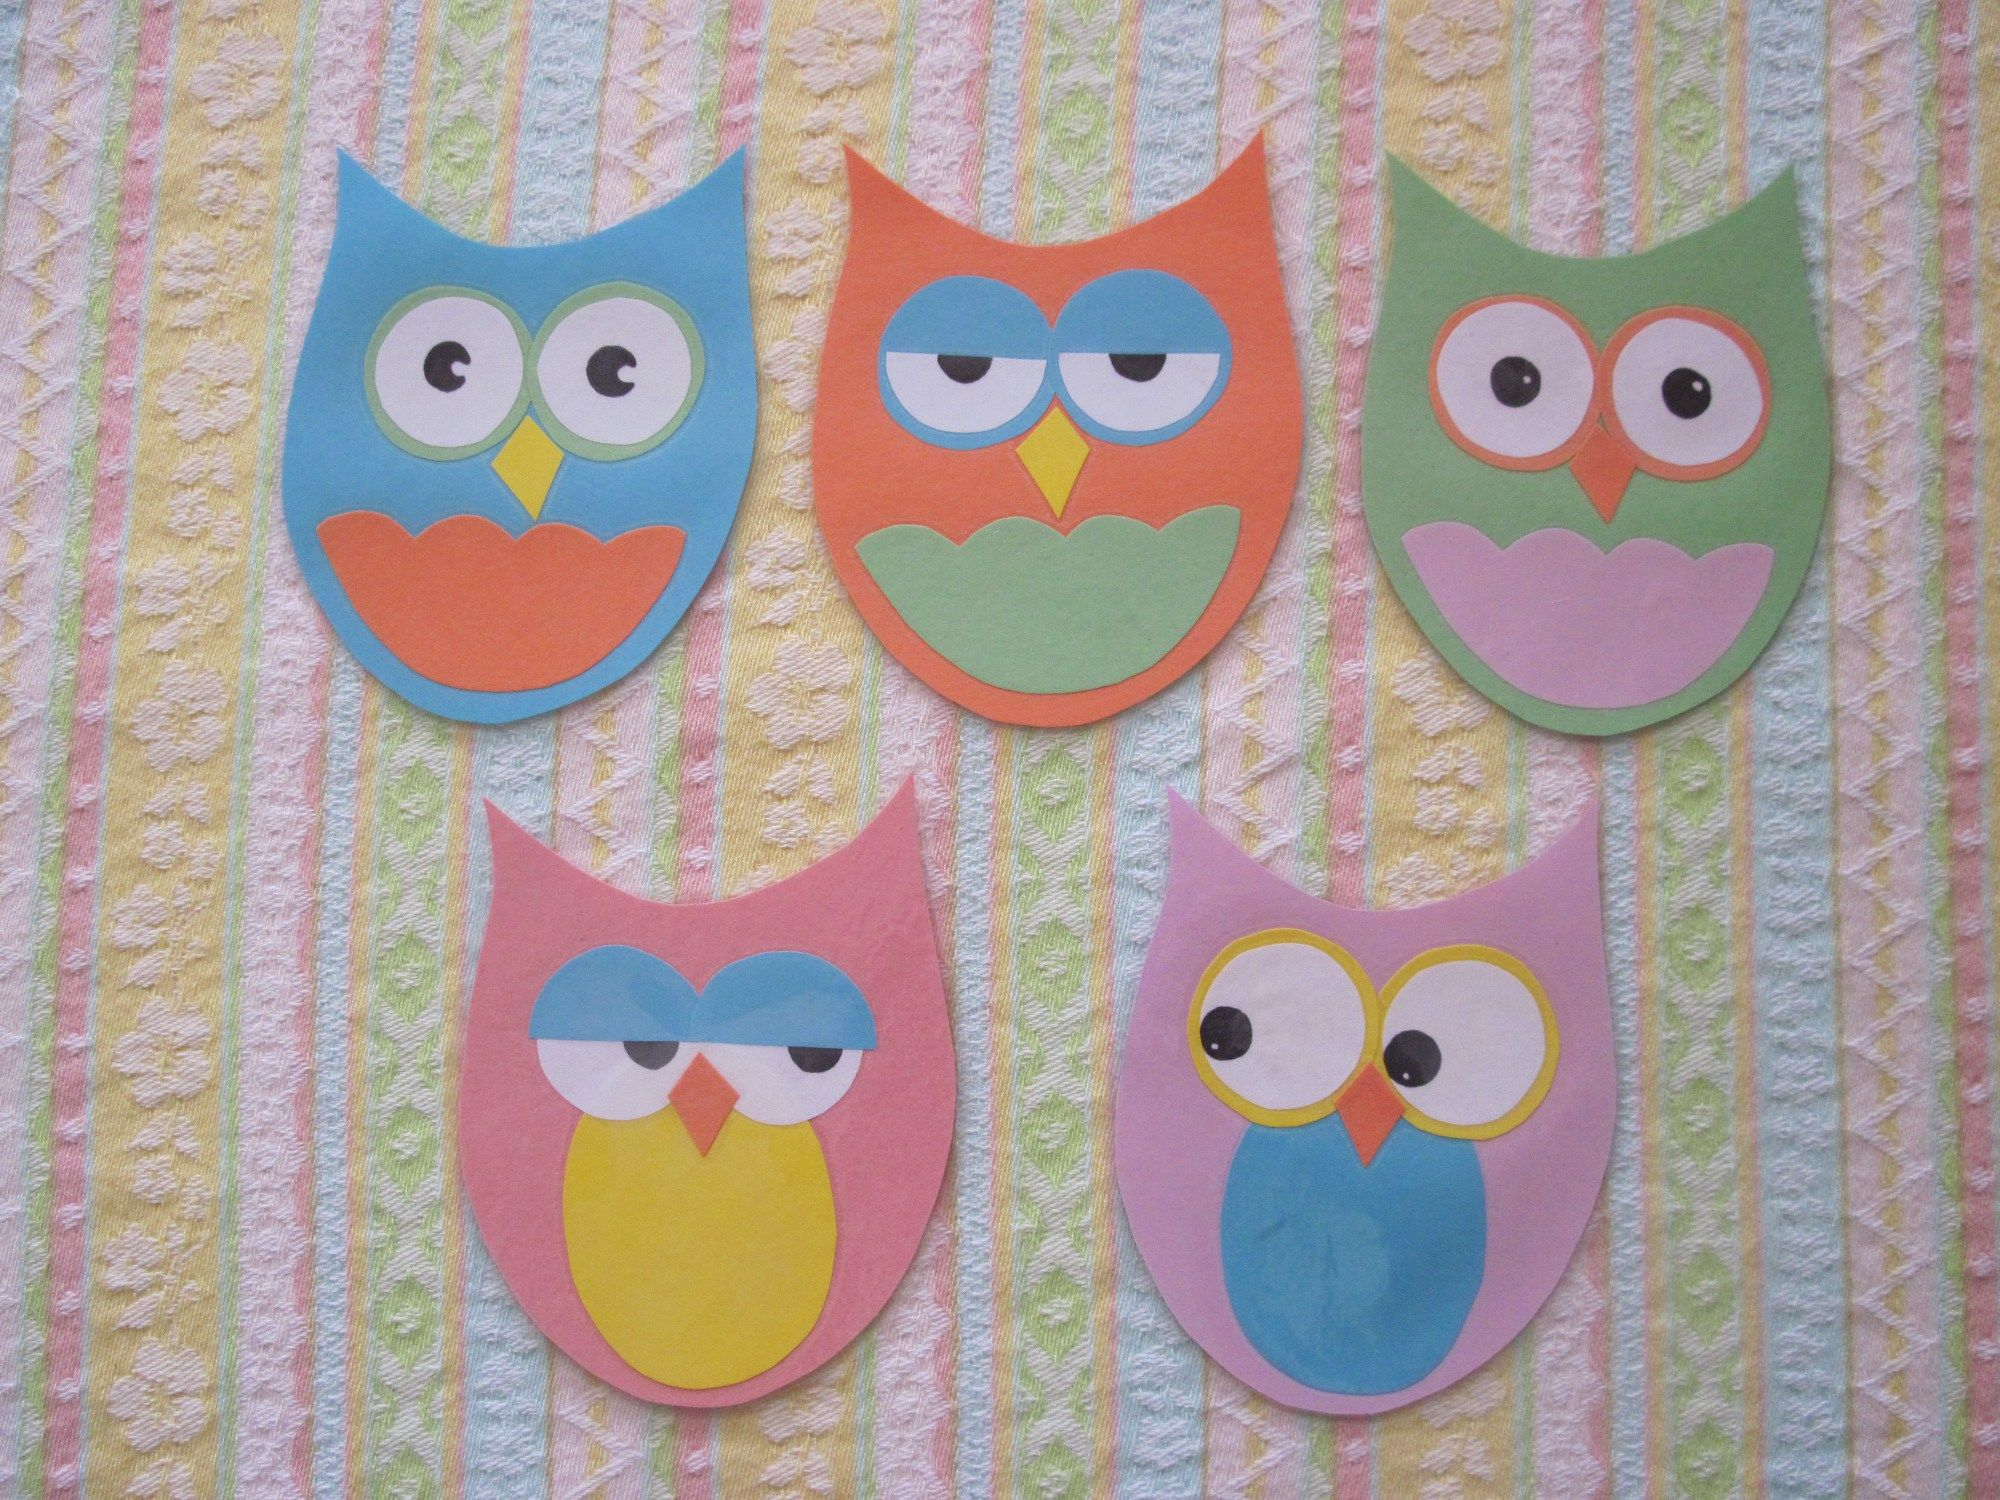 Hoot Owl Pattern With Songs And Books Felt